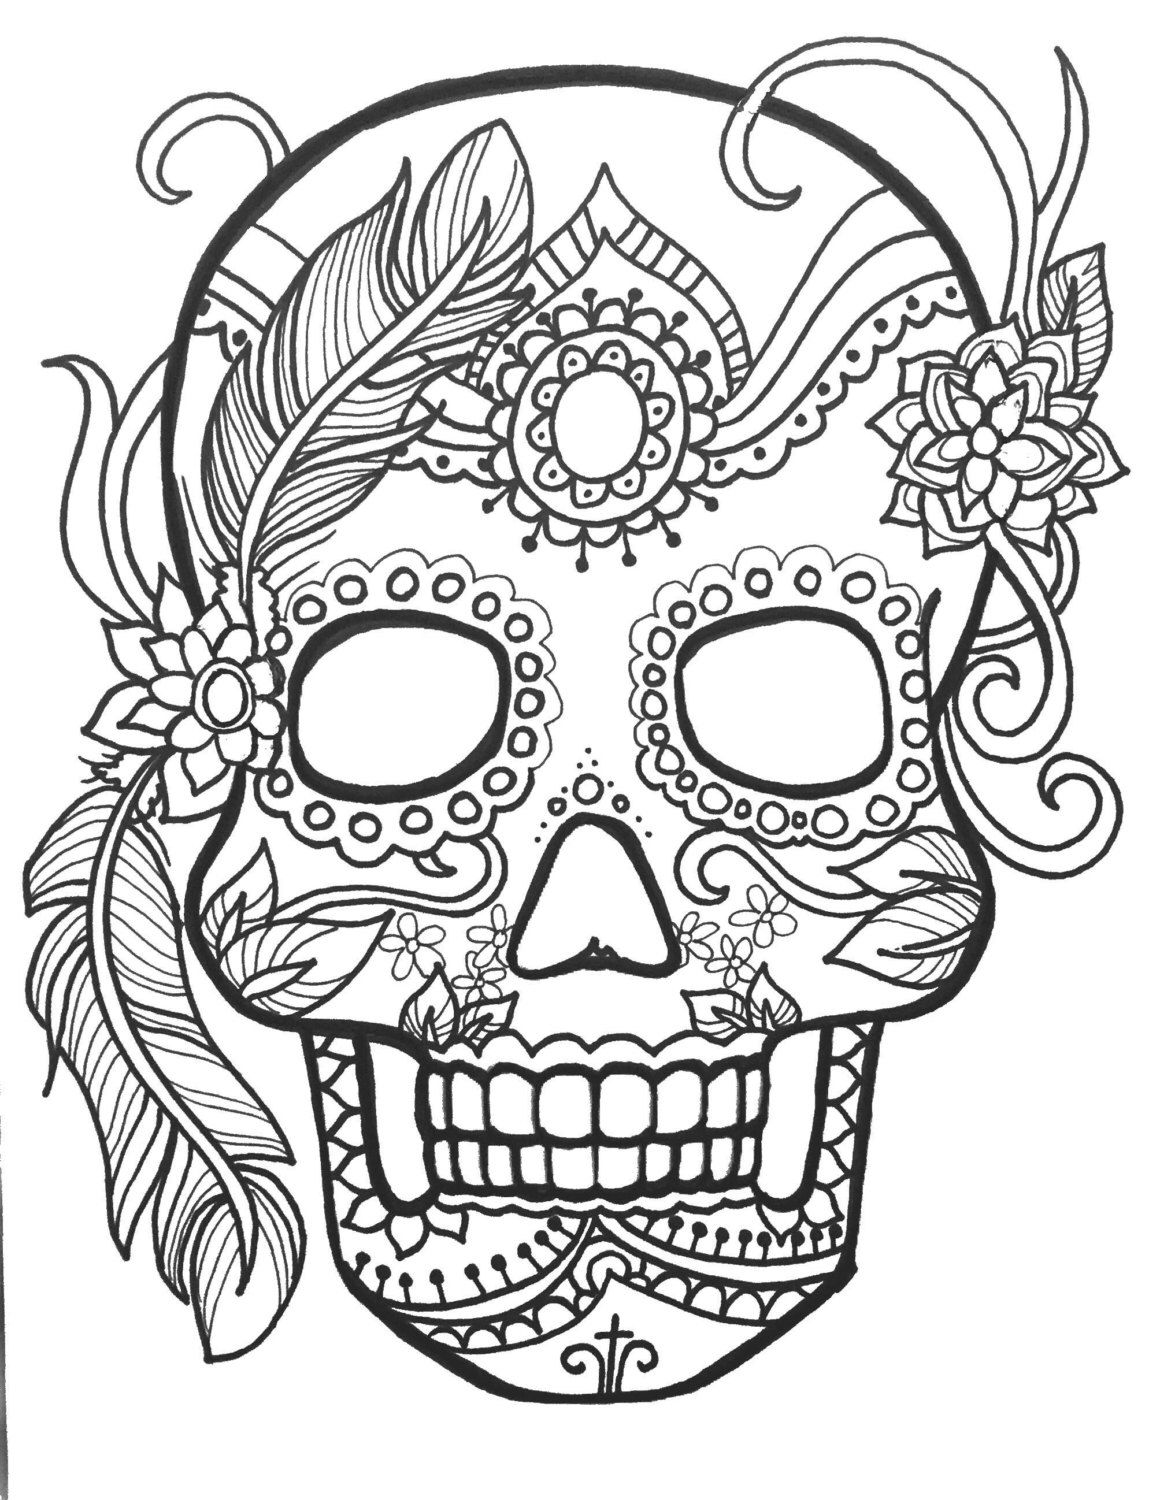 day of the dead skull coloring page day of the dead girl coloring pages at getdrawings free the coloring skull page dead day of